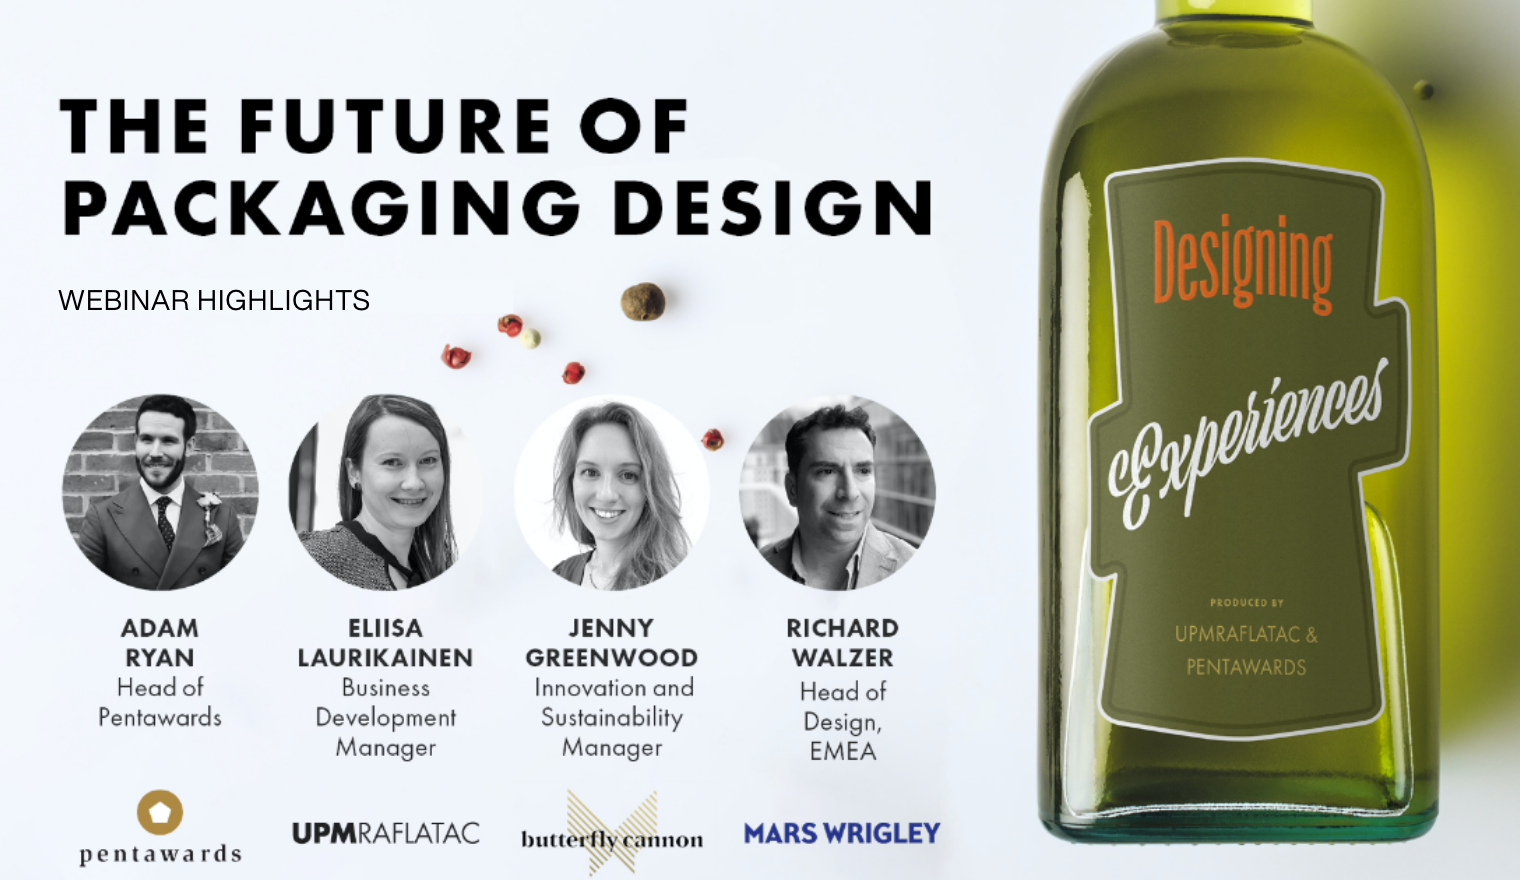 The Future of Packaging Design – Webinar Highlights